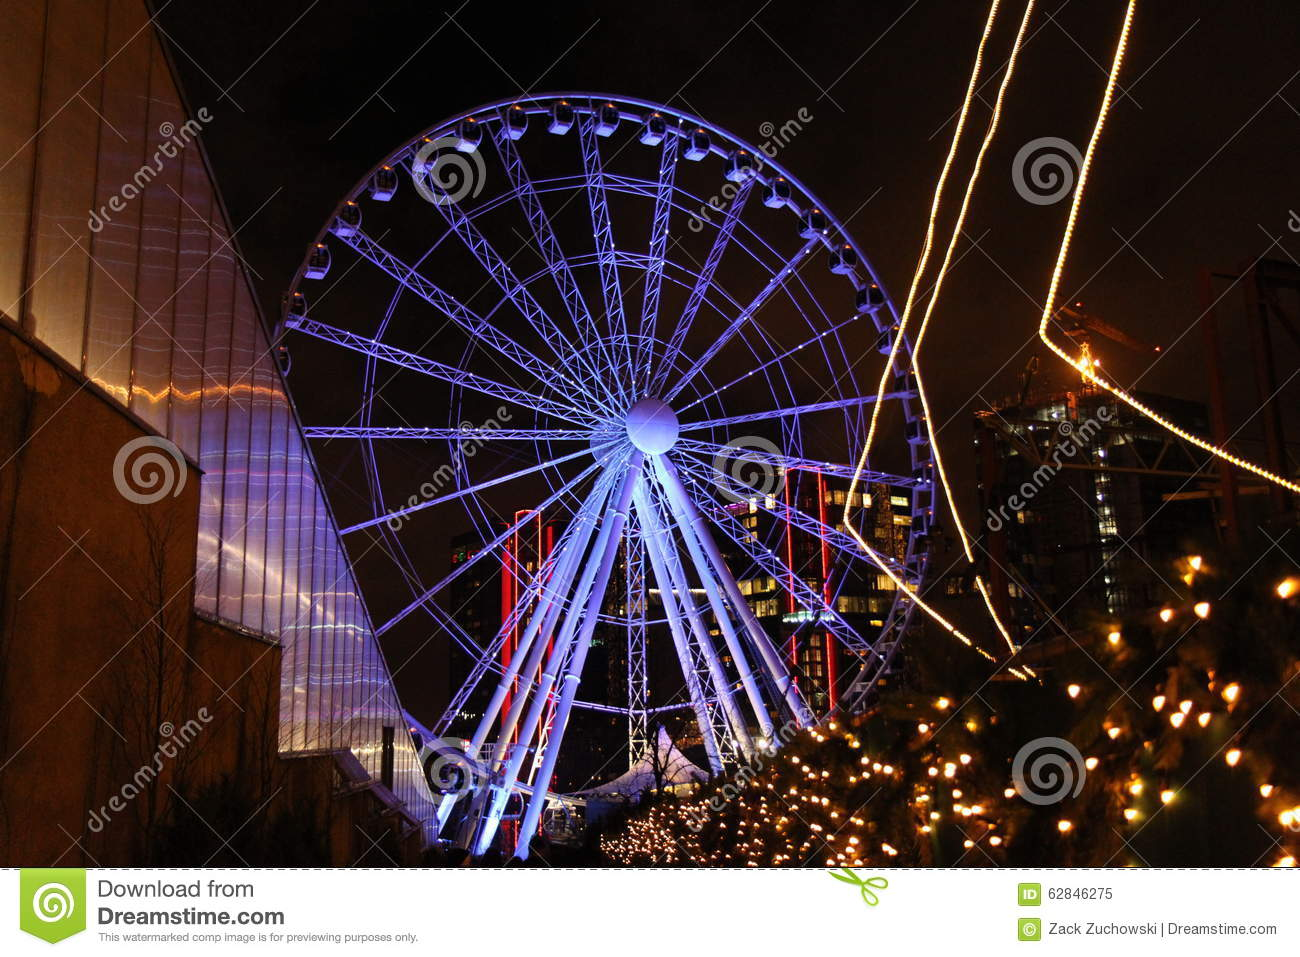 christmas lights and decorations at liseberg amusement park in gothenburg sweden with a view of a ferris wheel christmas trees stars and buildings